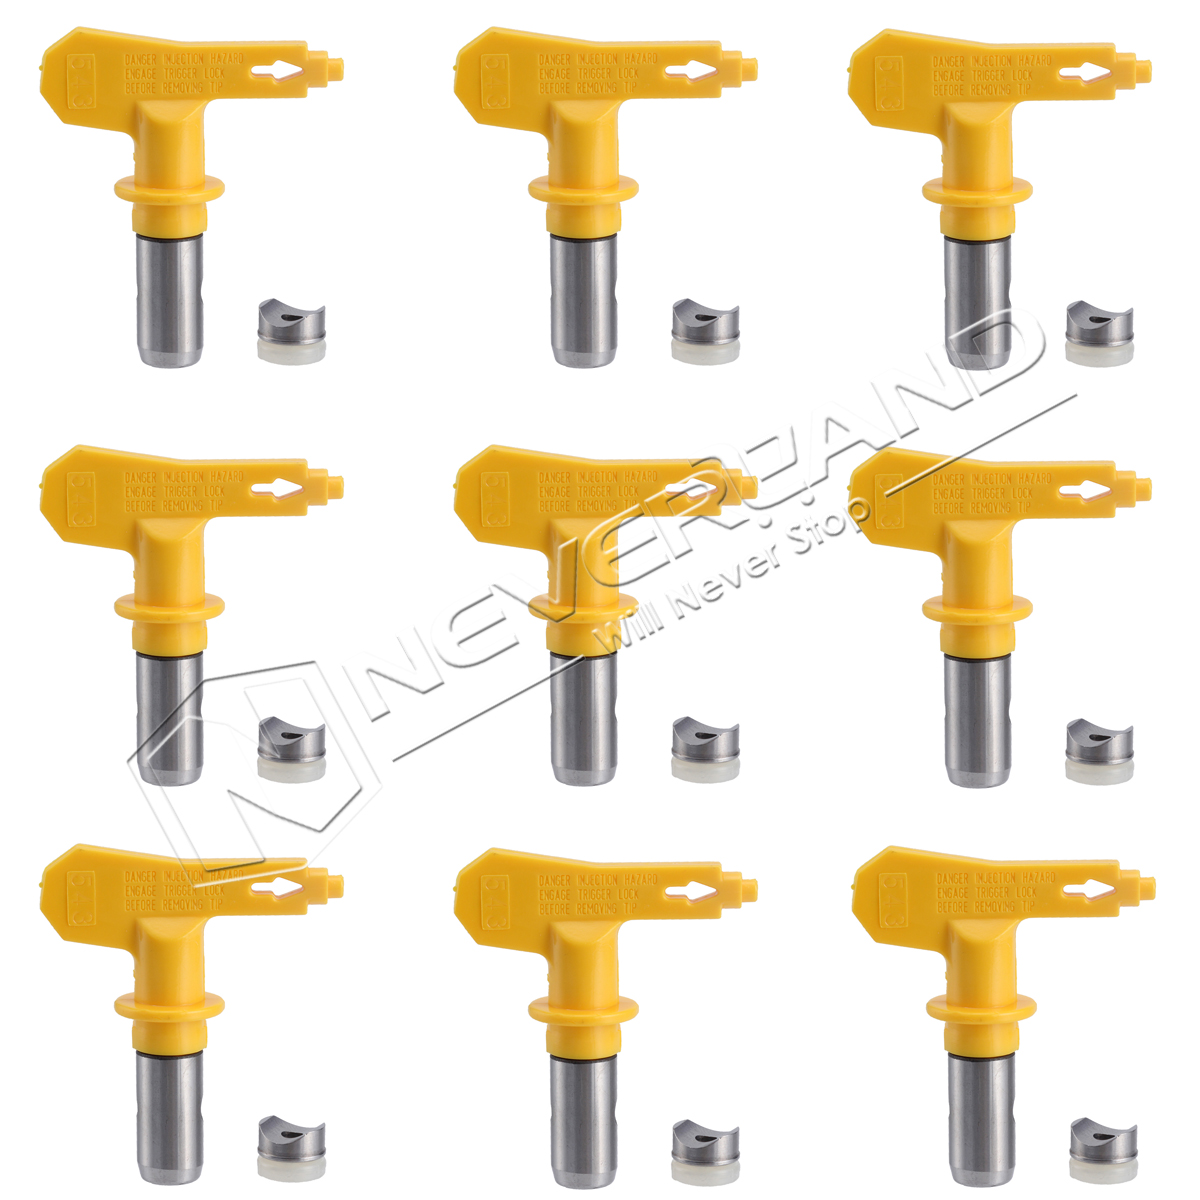 цены  Yellow 3/4 series Airless Sprayer Tips Paint Spray Gun Nozzle For Graco Titan Wagner Painting Supplies 5x5.5cm